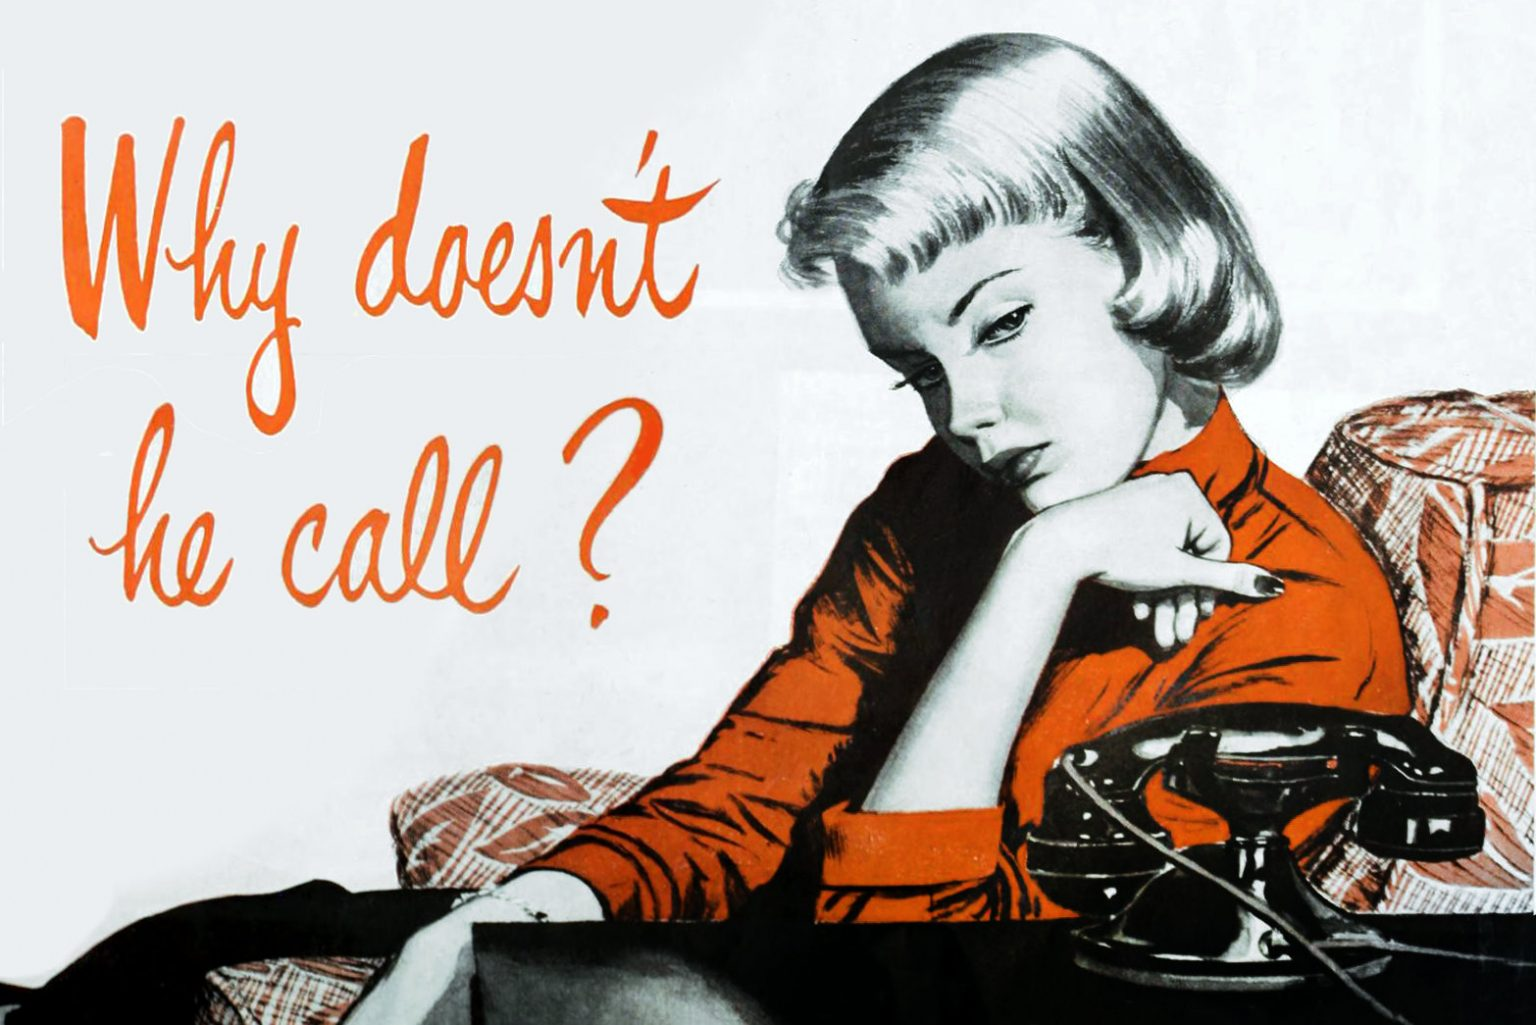 Why doesn't he call - love advice from 1950